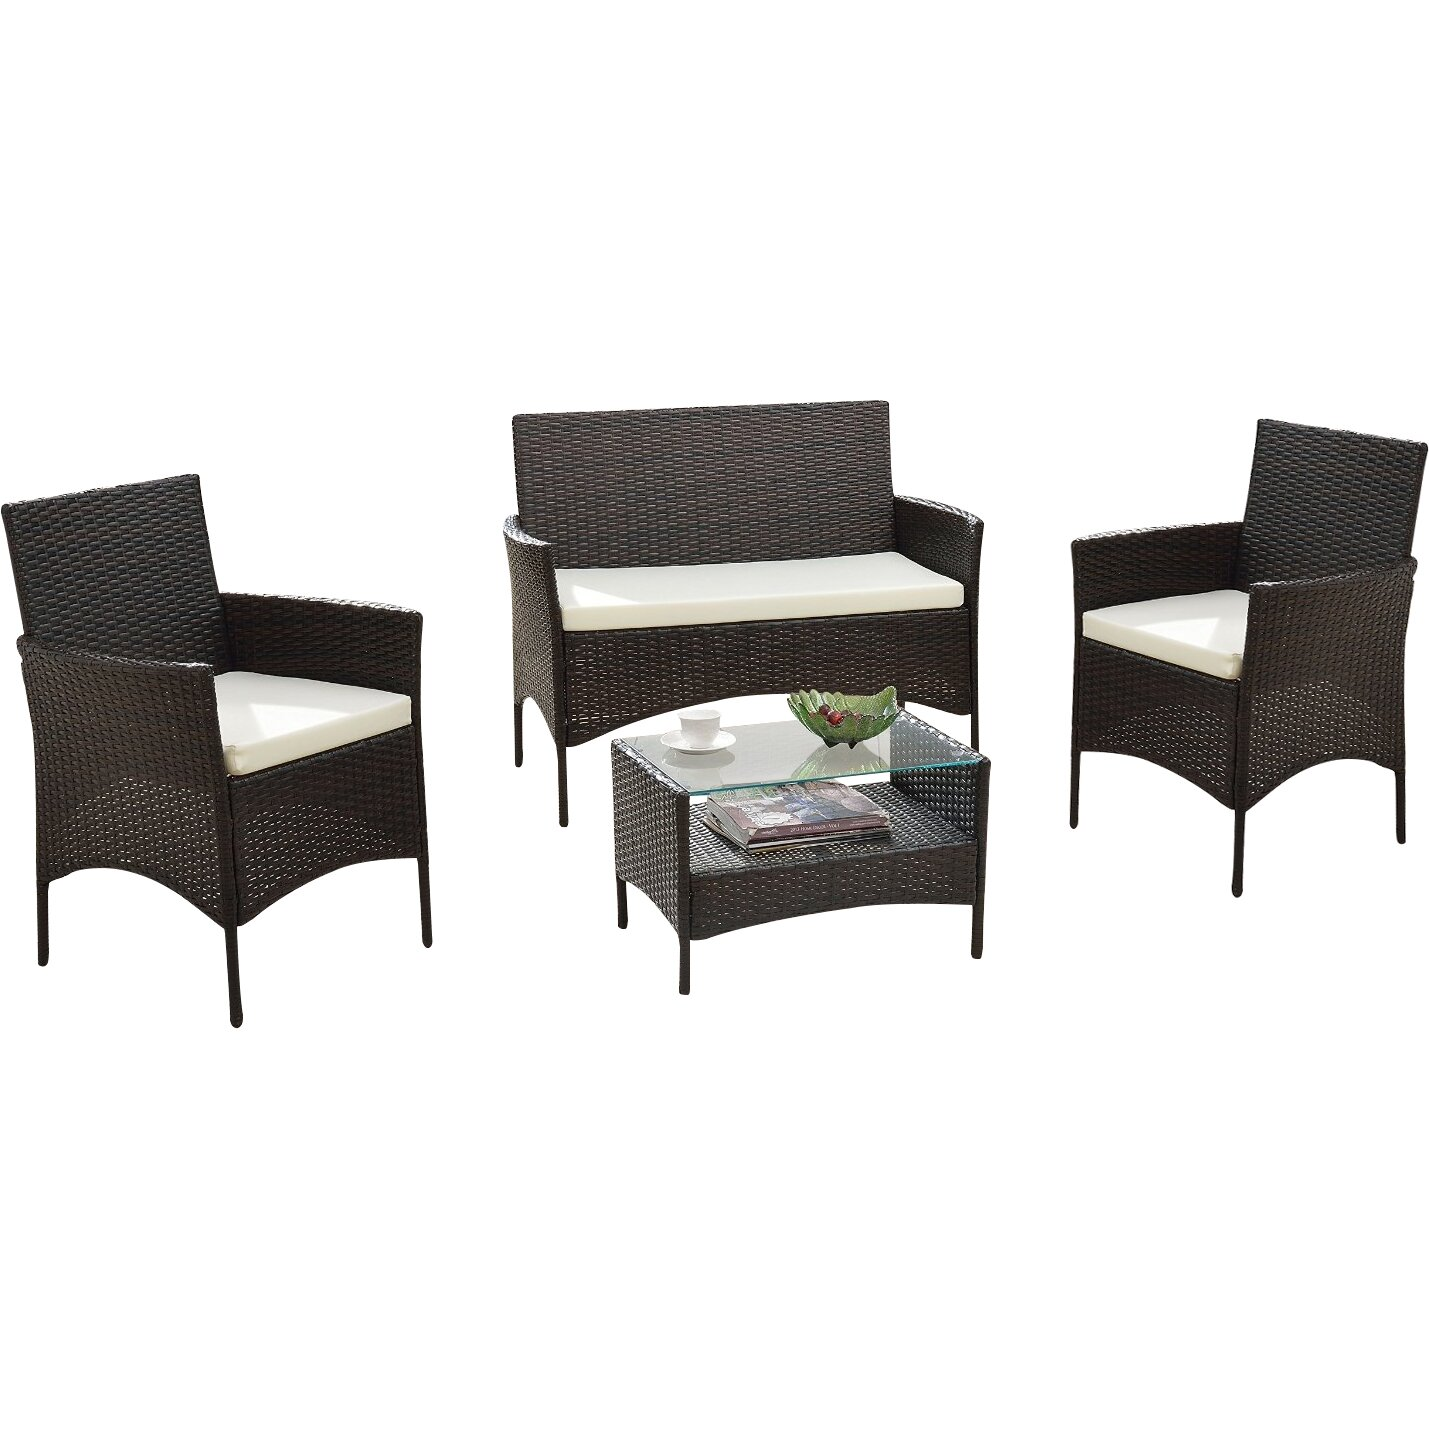 Woodland Park 4 Piece Patio Deep Seating Group With Cushions